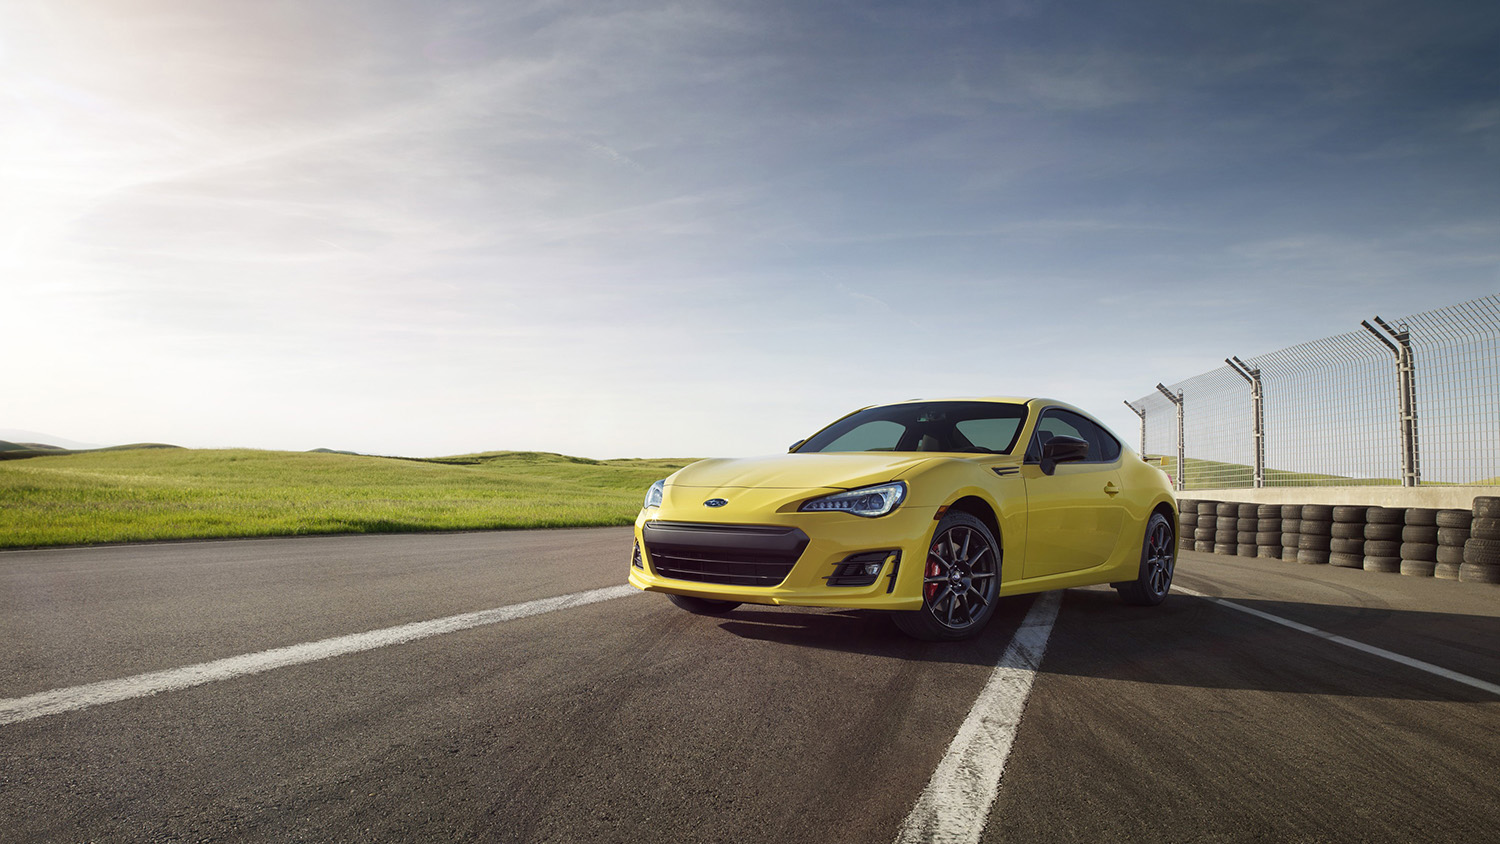 2017 Subaru BRZ Series Yellow: New car reviews | Grassroots